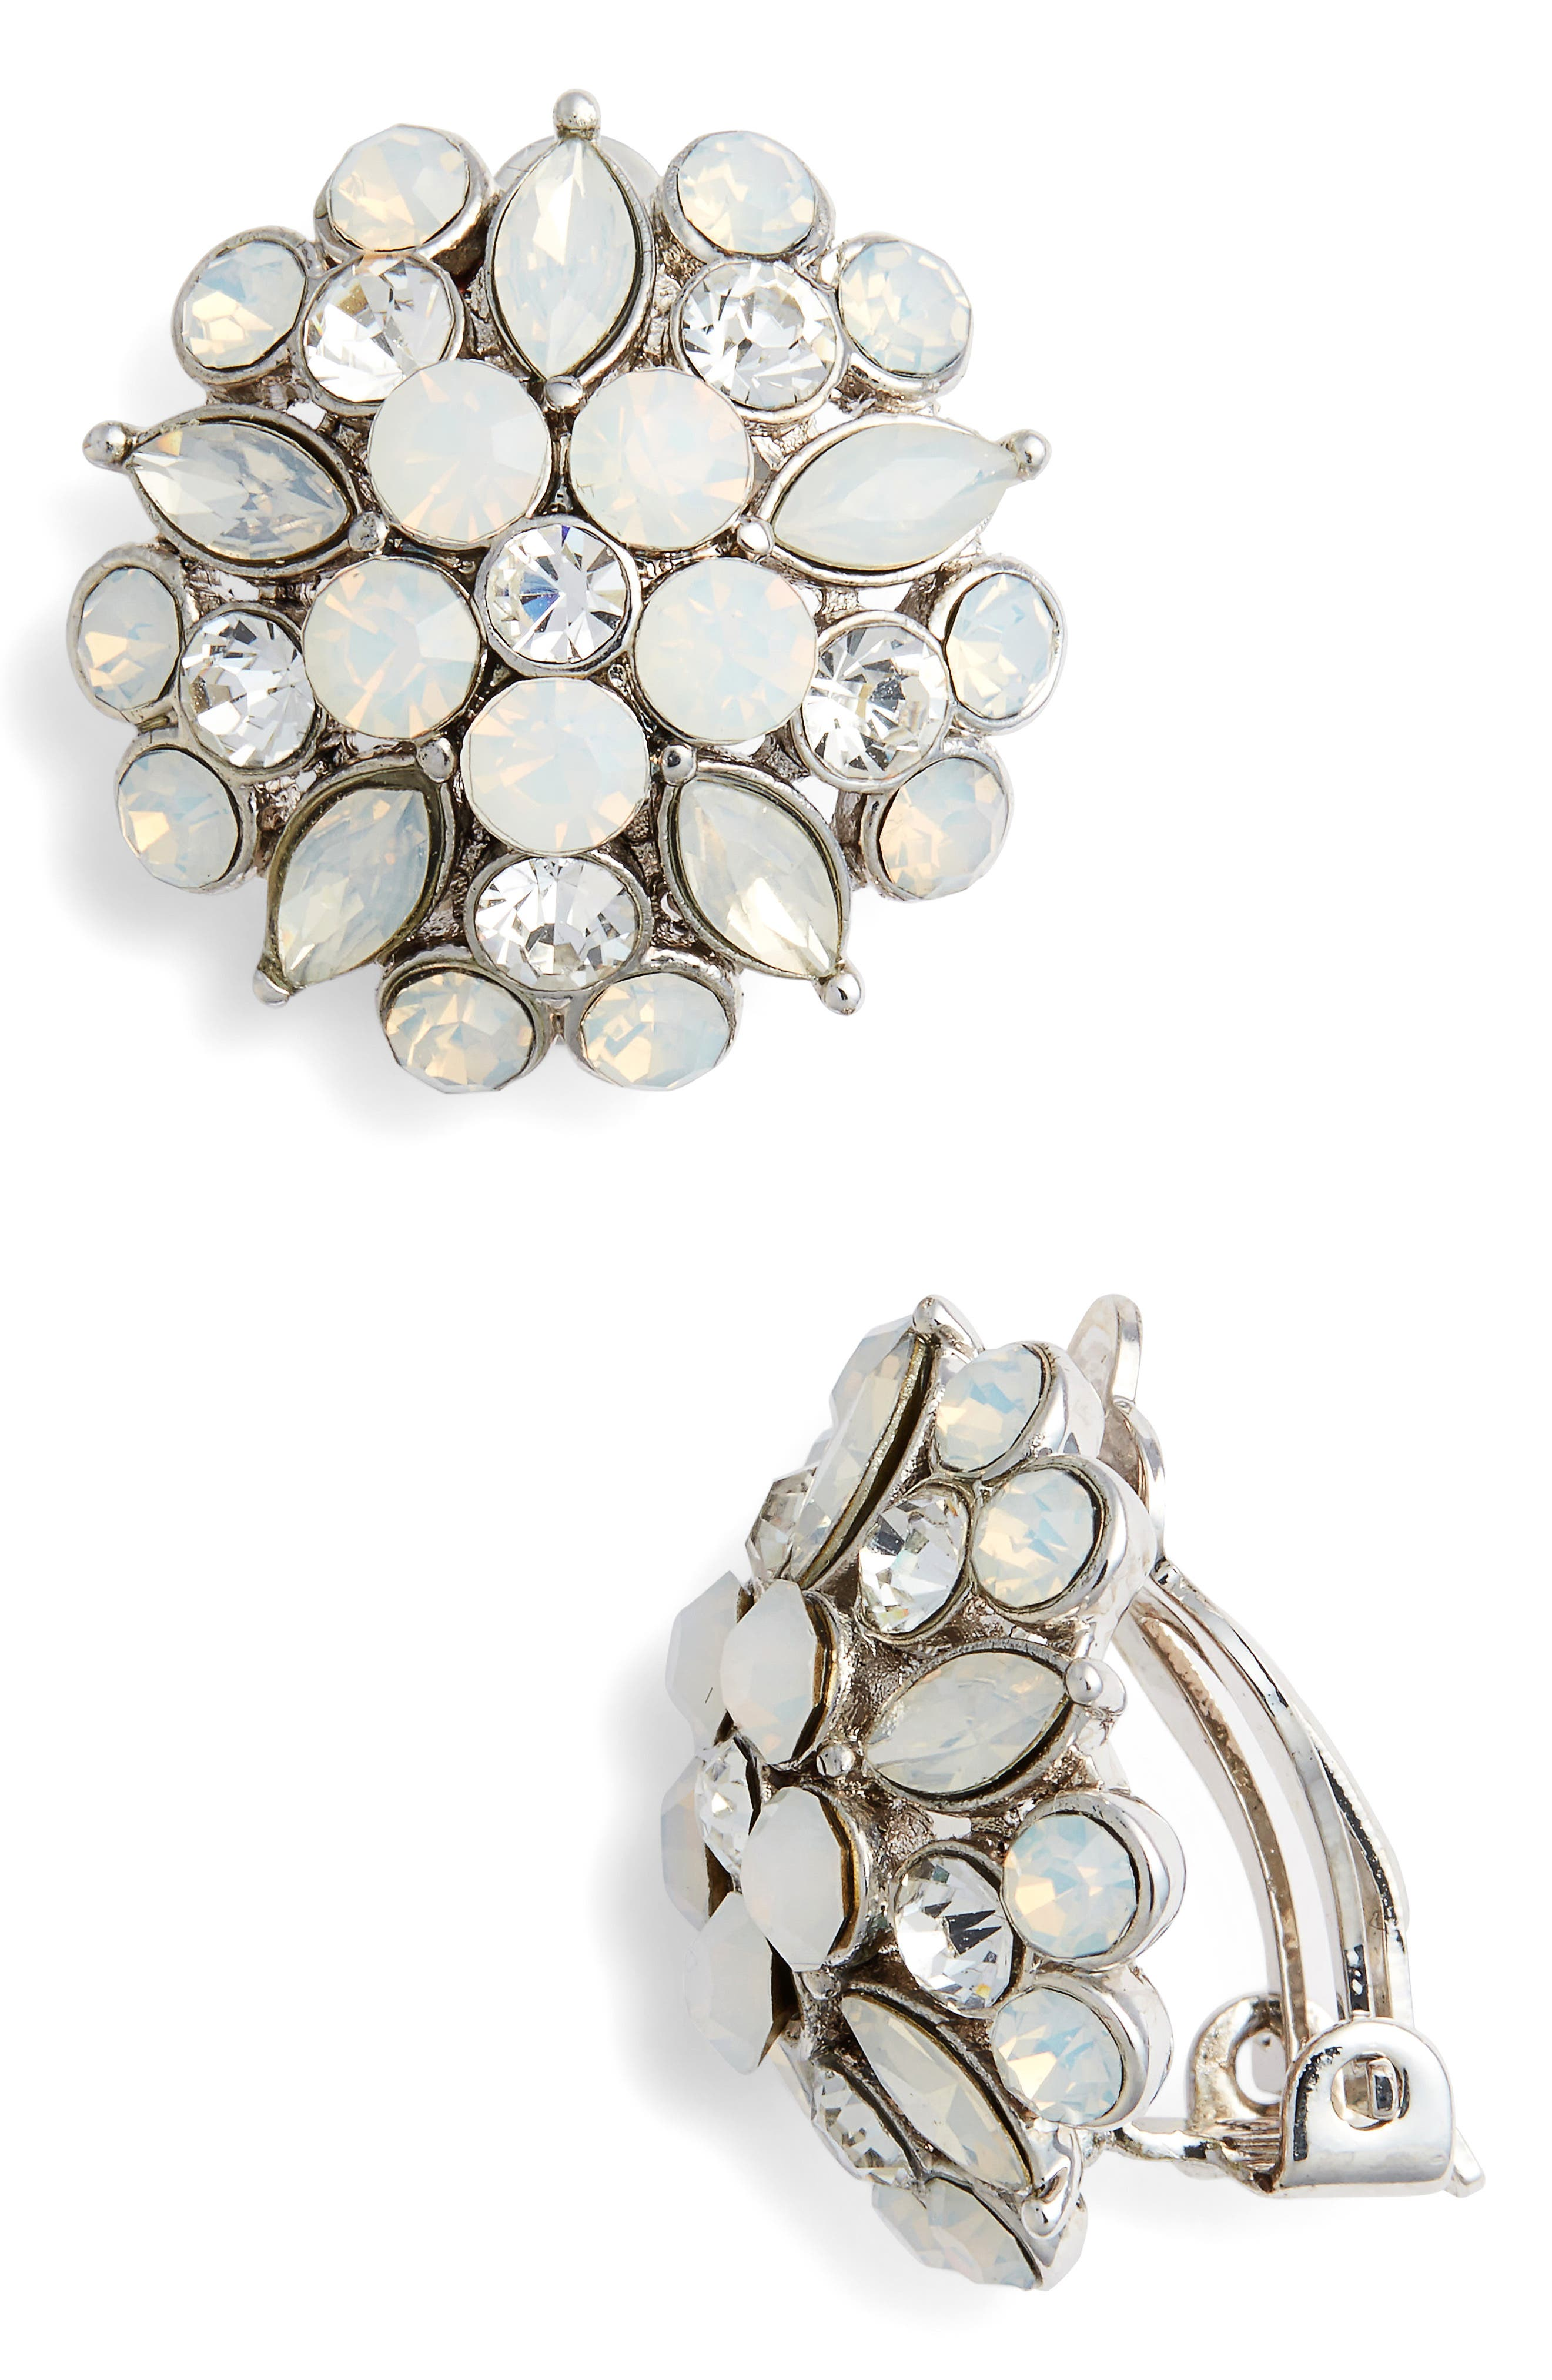 Floral Stud Earrings,                         Main,                         color, Silver/ Opal/ White Crystal